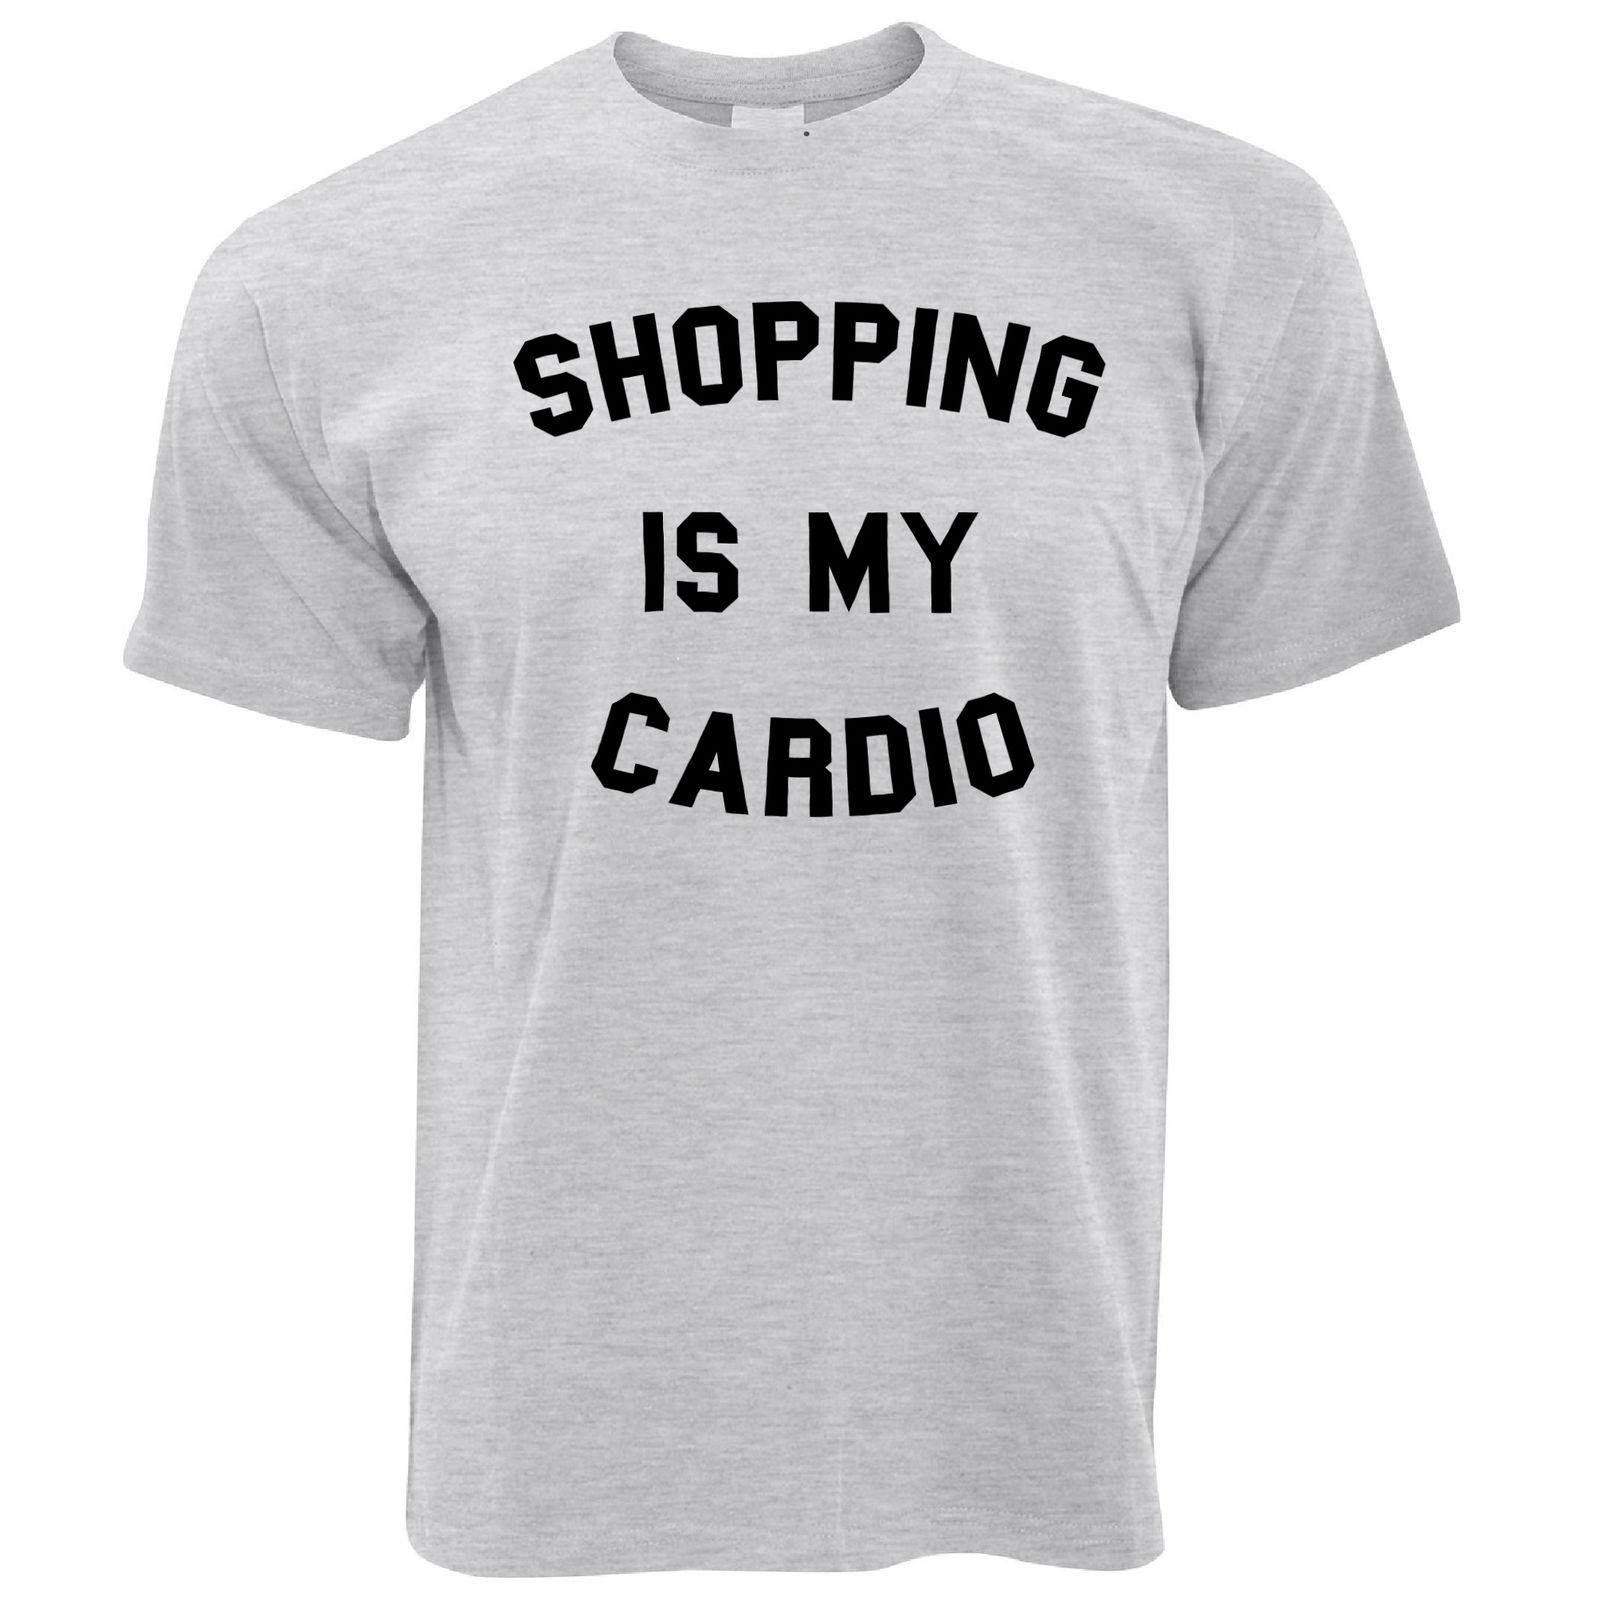 914c8595 Shopping Is My Cardio Girly Cute Slogan Feminine Funny Fitness Mens T Shirt  It T Shirt Design Clever Tee Shirts From Sugarlisaxx, $11.01  DHgate.Com